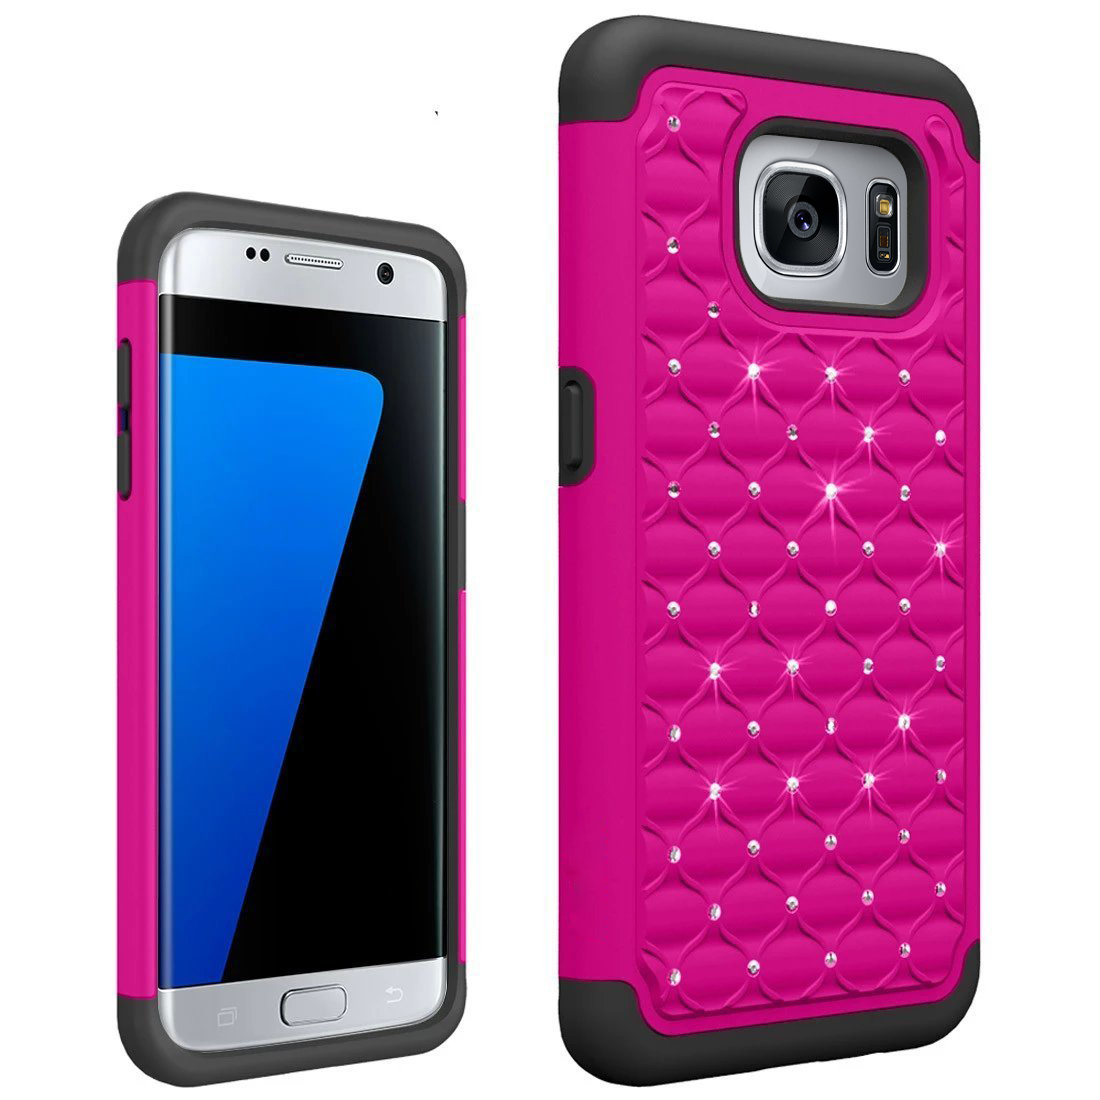 Samsung Galaxy S7 Edge Bling Case, Redshield [Hot Pink/ Black]  Supreme Protection Bling Plastic on Silicone Dual Layer Hybrid Case with Travel Wallet Phone Stand